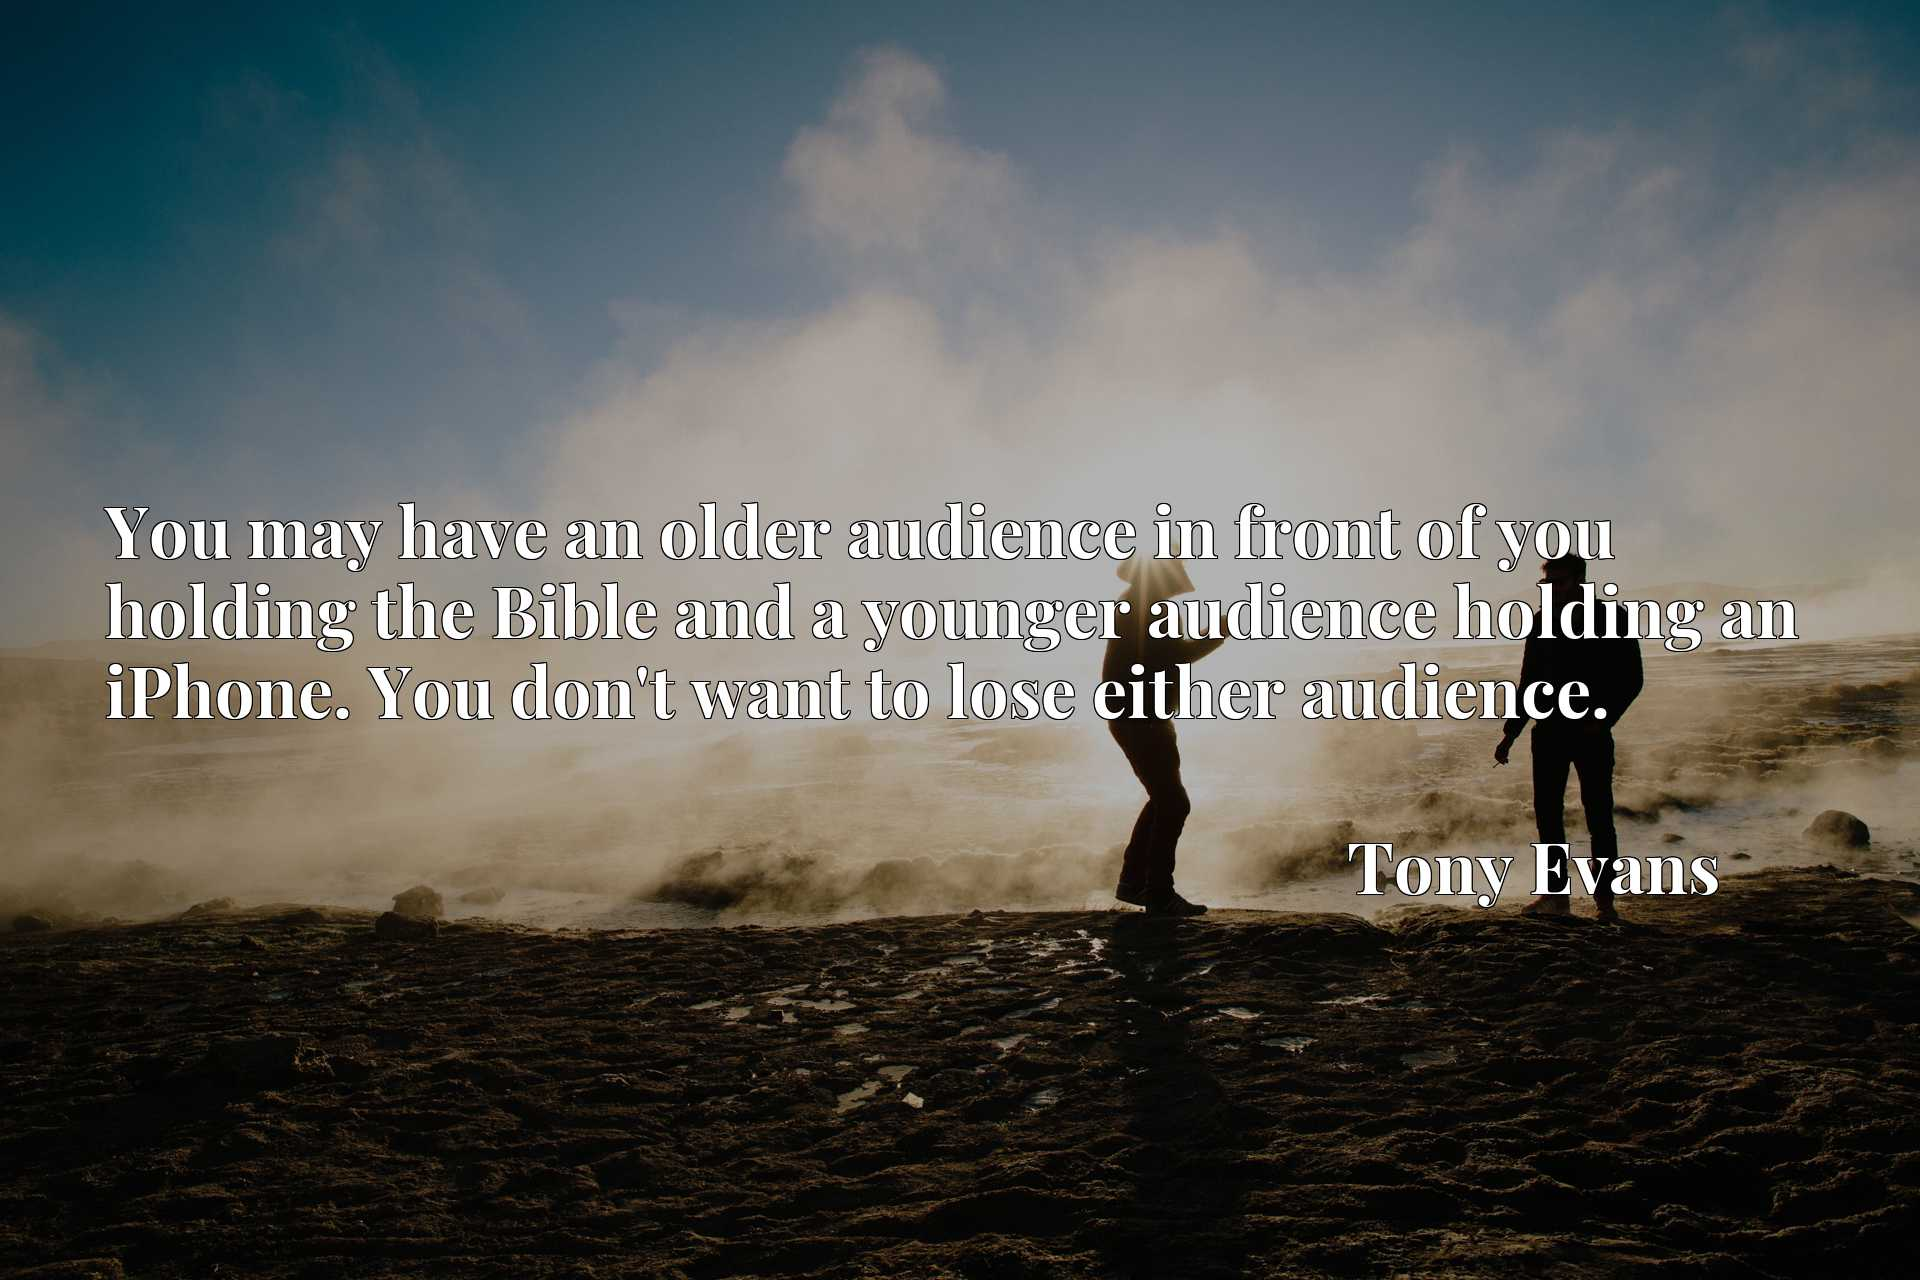 You may have an older audience in front of you holding the Bible and a younger audience holding an iPhone. You don't want to lose either audience.